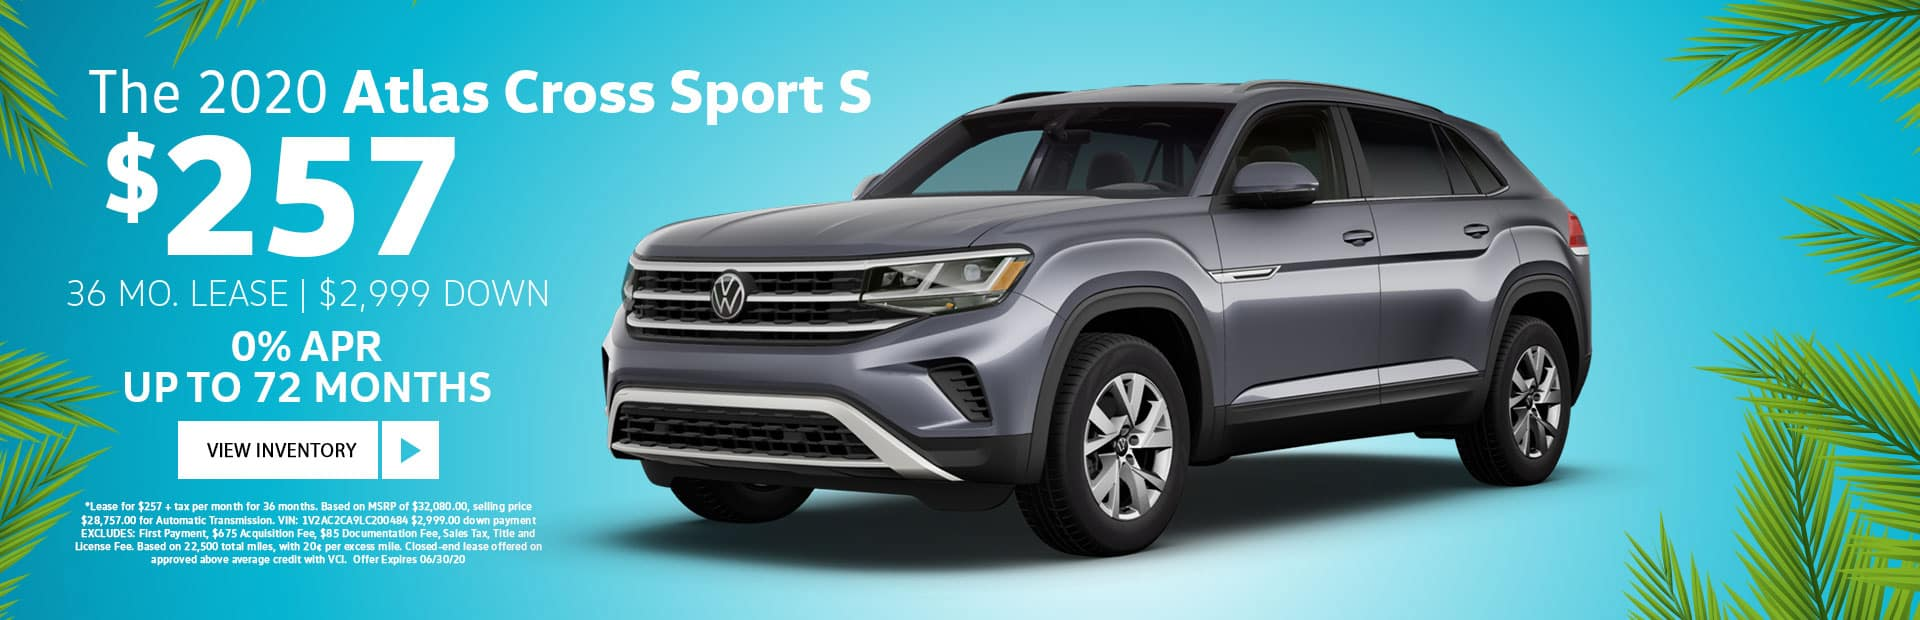 vw-2020-Atlas-cross-sport-special